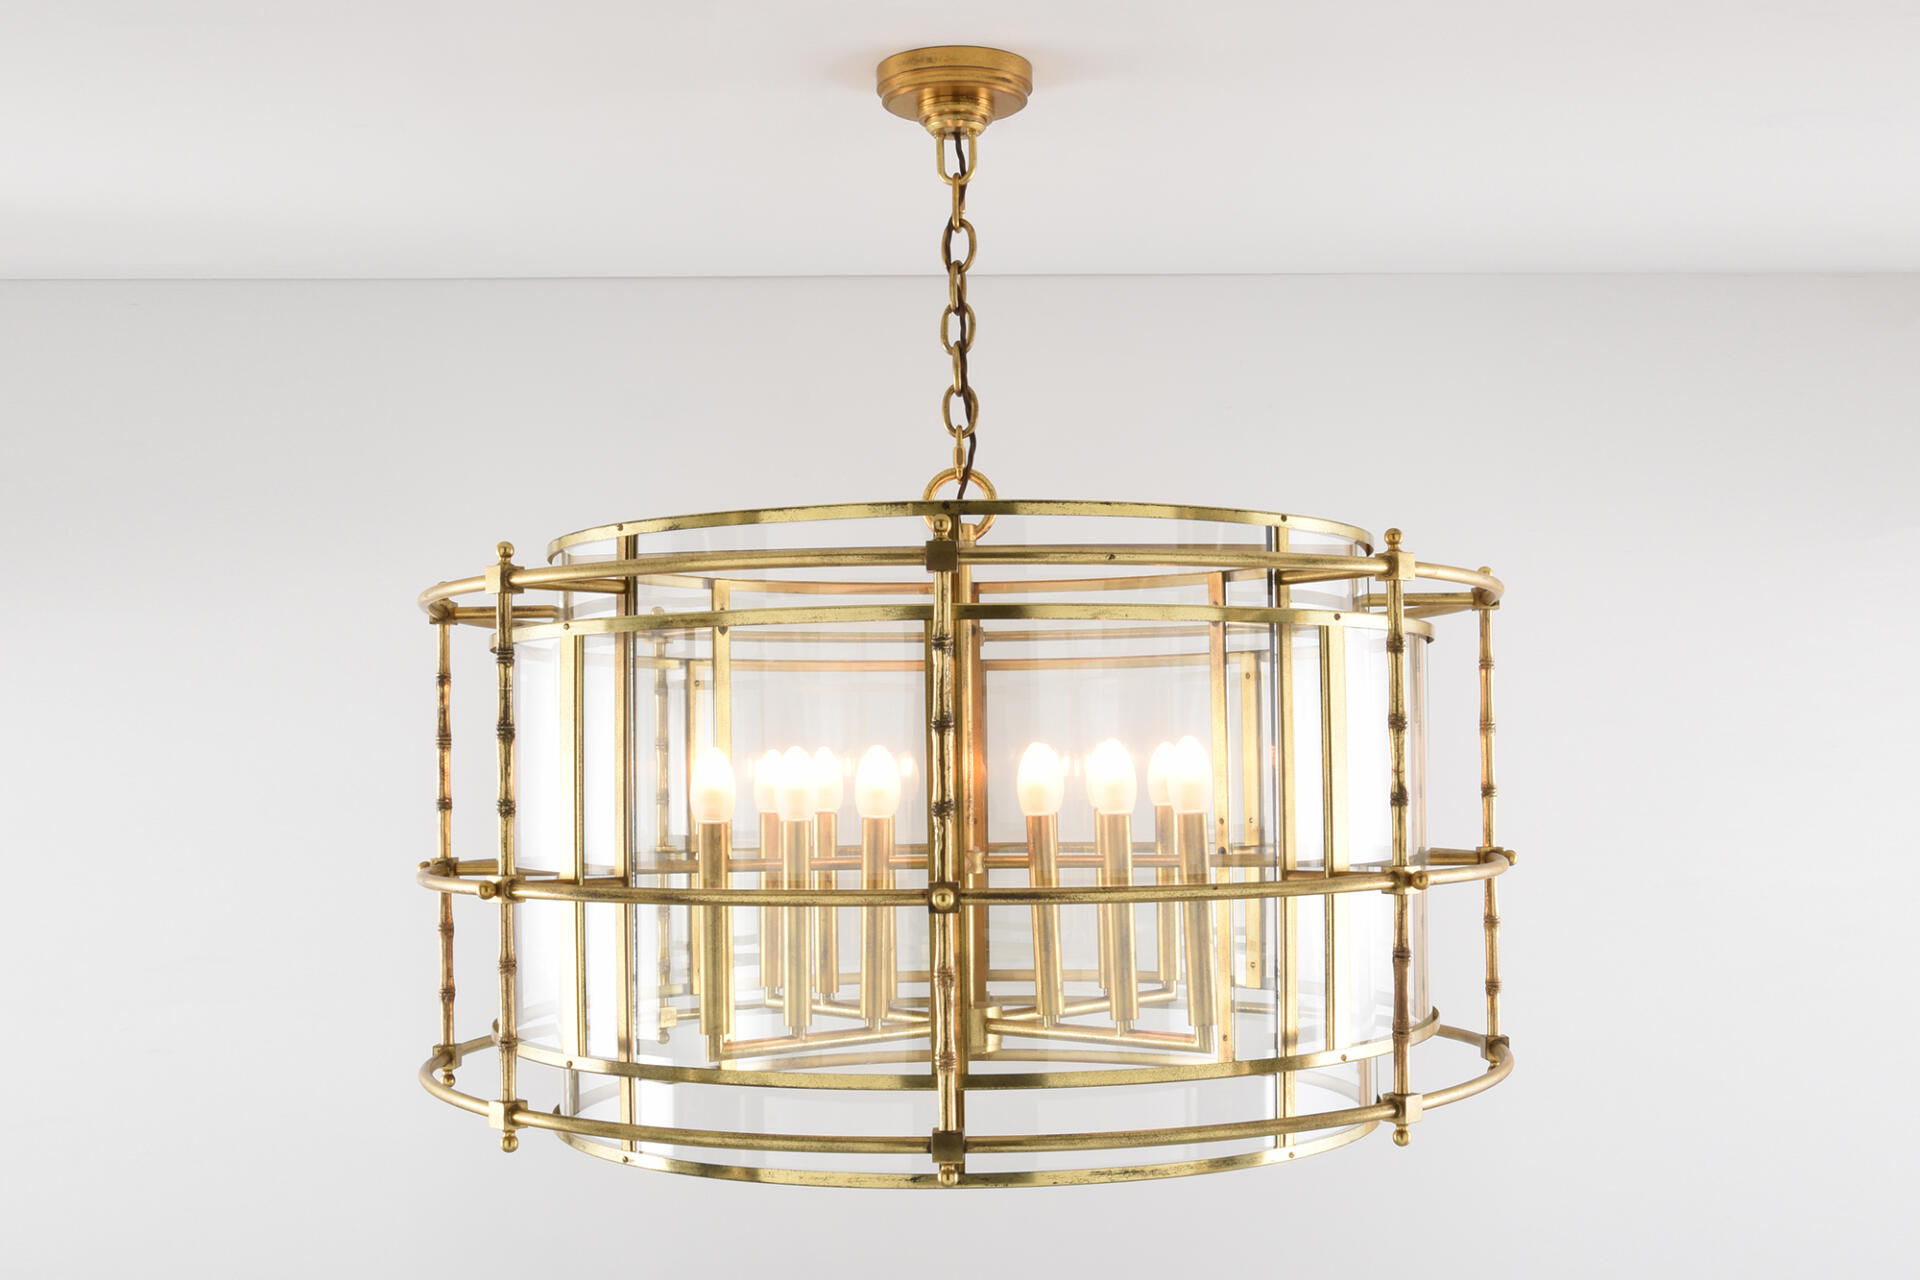 Brass bamboo style ceiling light